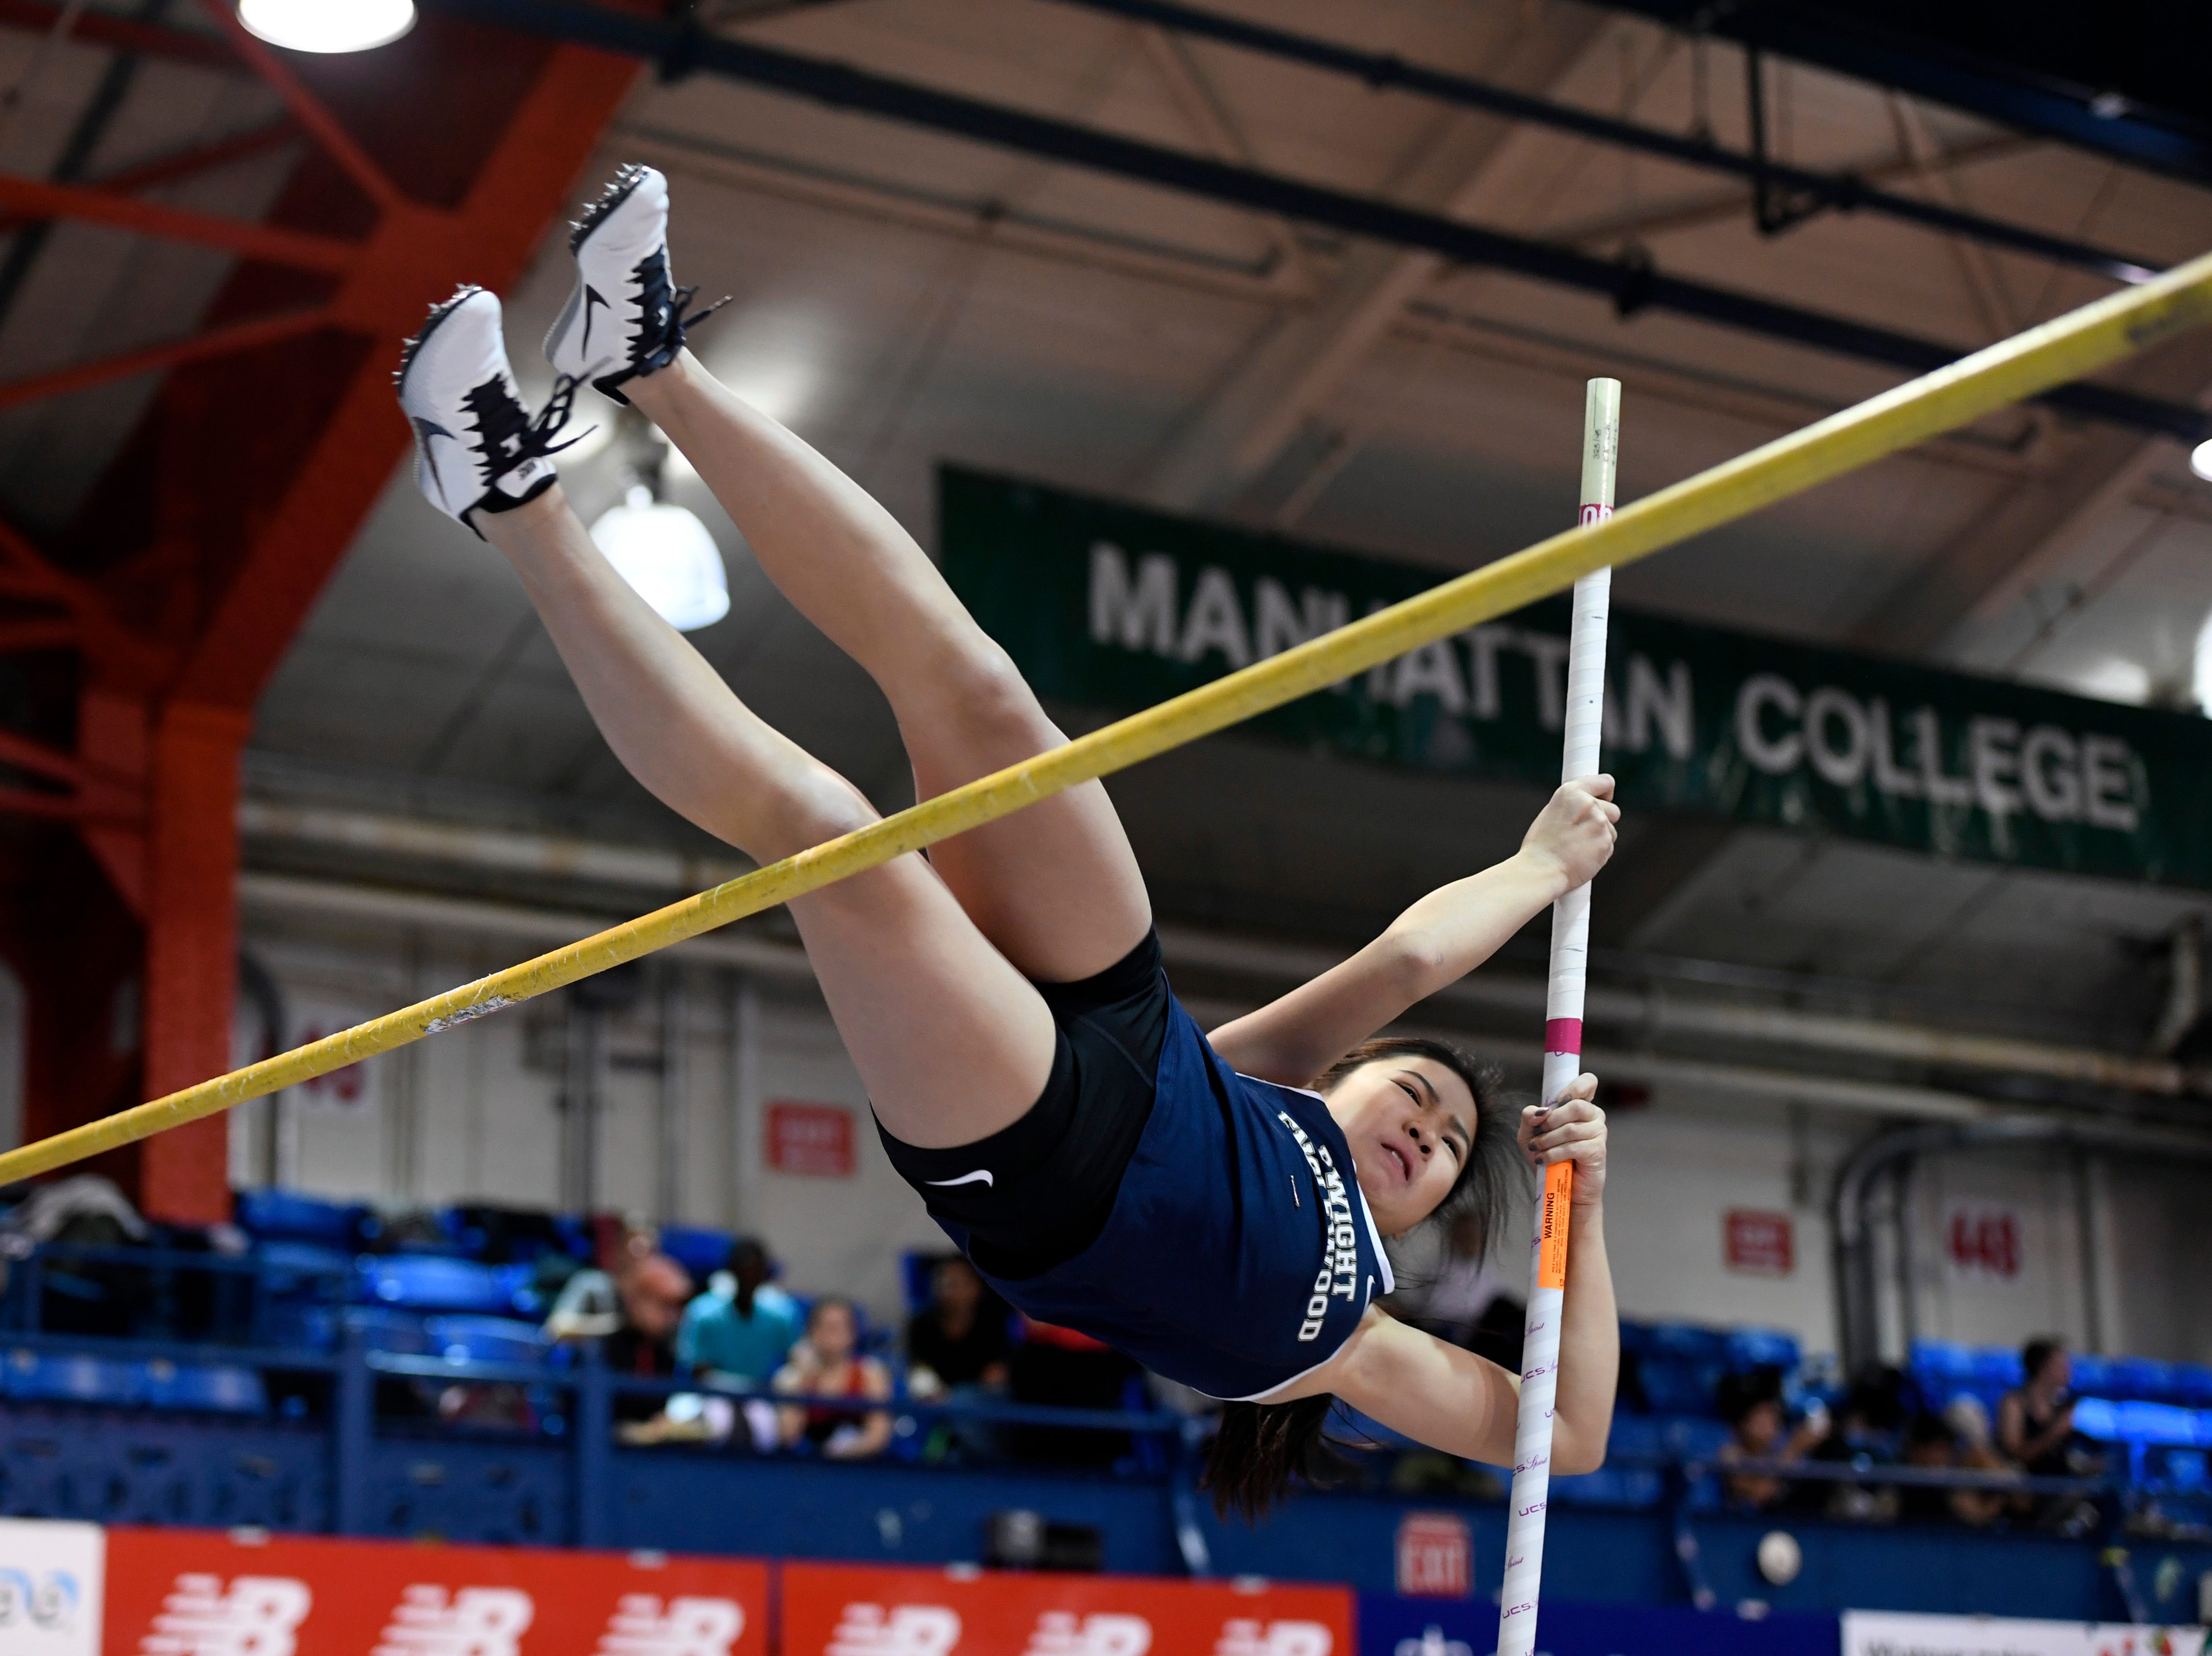 Linsey Lam of Dwight Englewood placed third in pole vault, clearing 7-feet-6-inches, during the NJIC track meet at the Armory Track on Monday, Jan. 7, 2019, in New York.